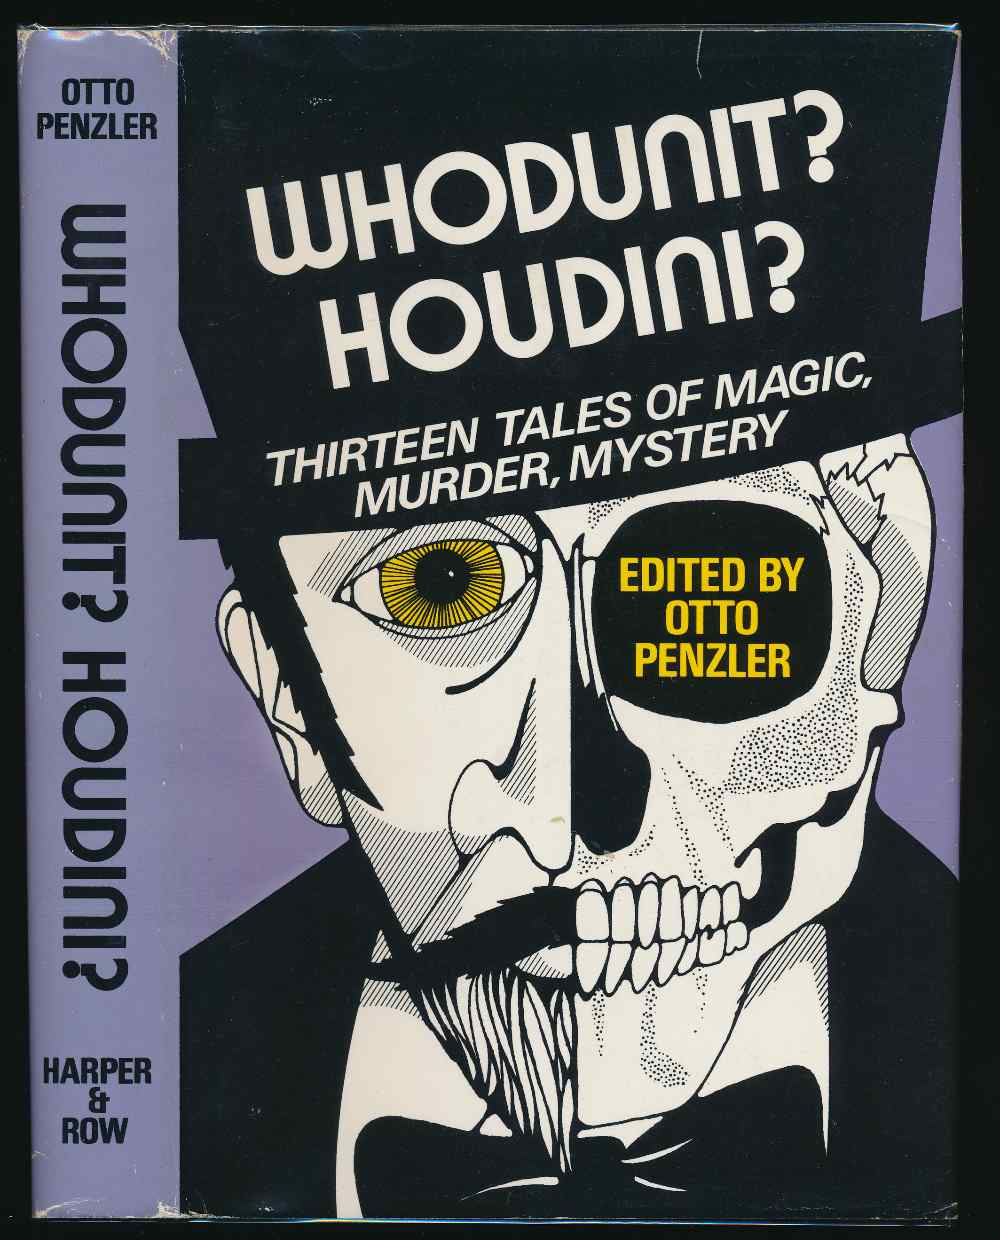 Whodunit? Houdini? Thirteen tales of magic, murder, mystery